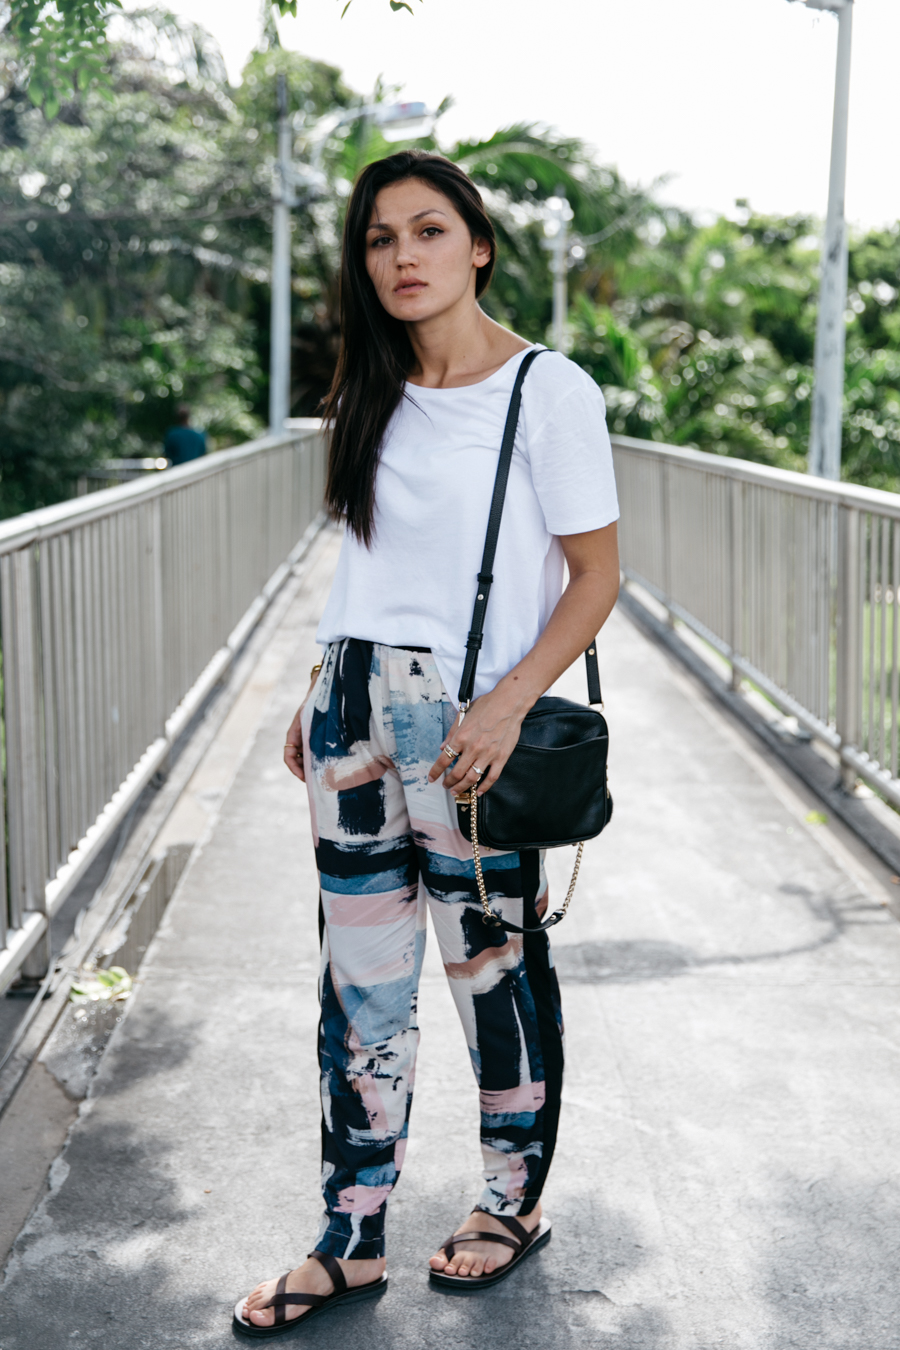 Half Thai fashion blogger. Statement print pants outfit.